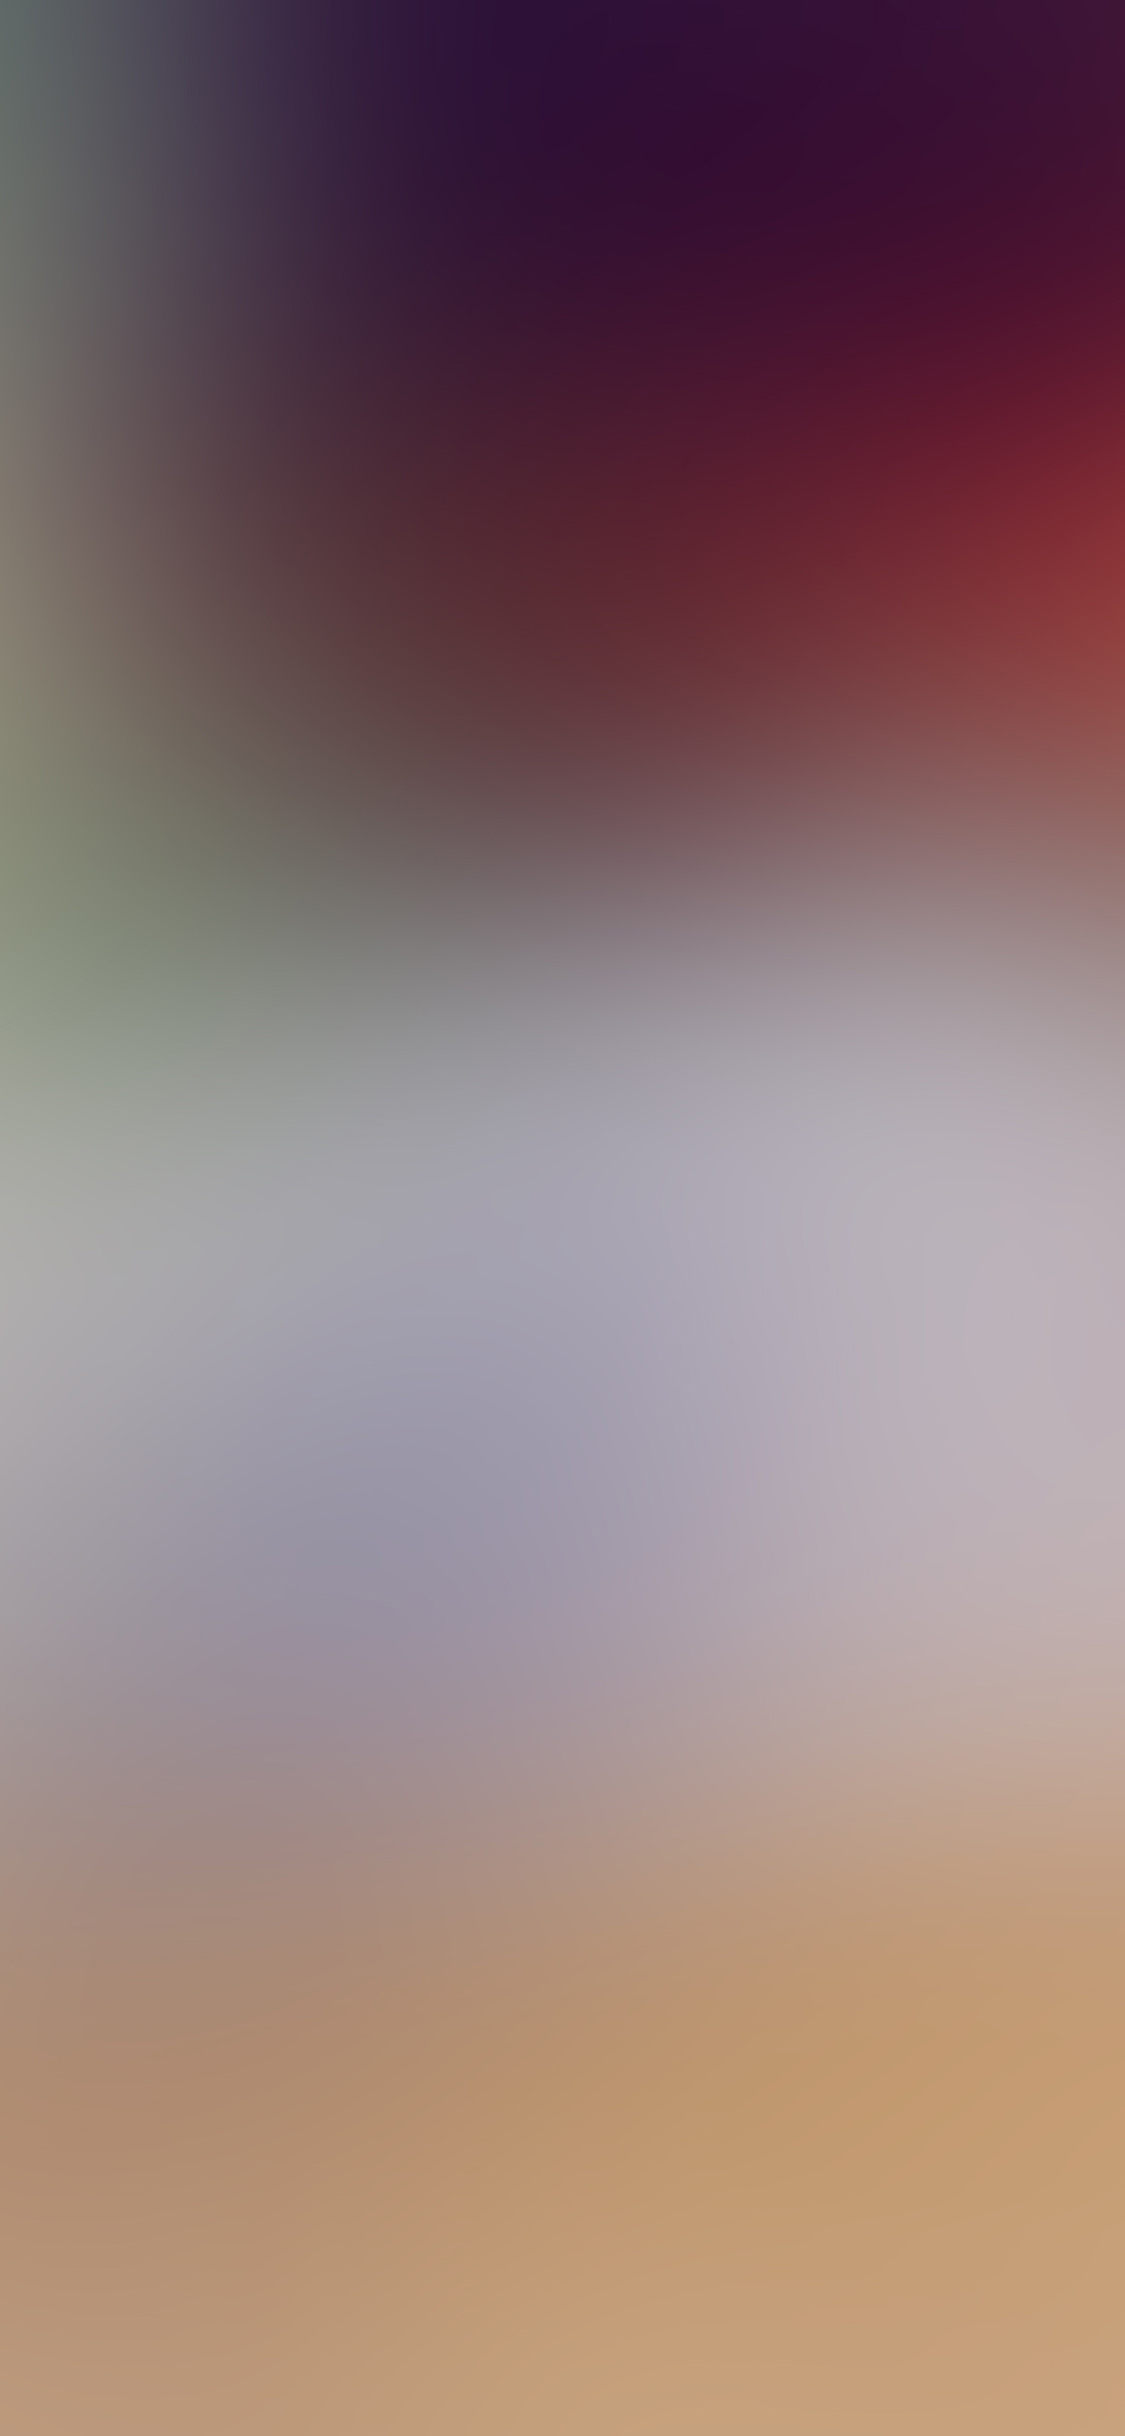 iPhoneXpapers.com-Apple-iPhone-wallpaper-sl22-red-sea-blur-gradation